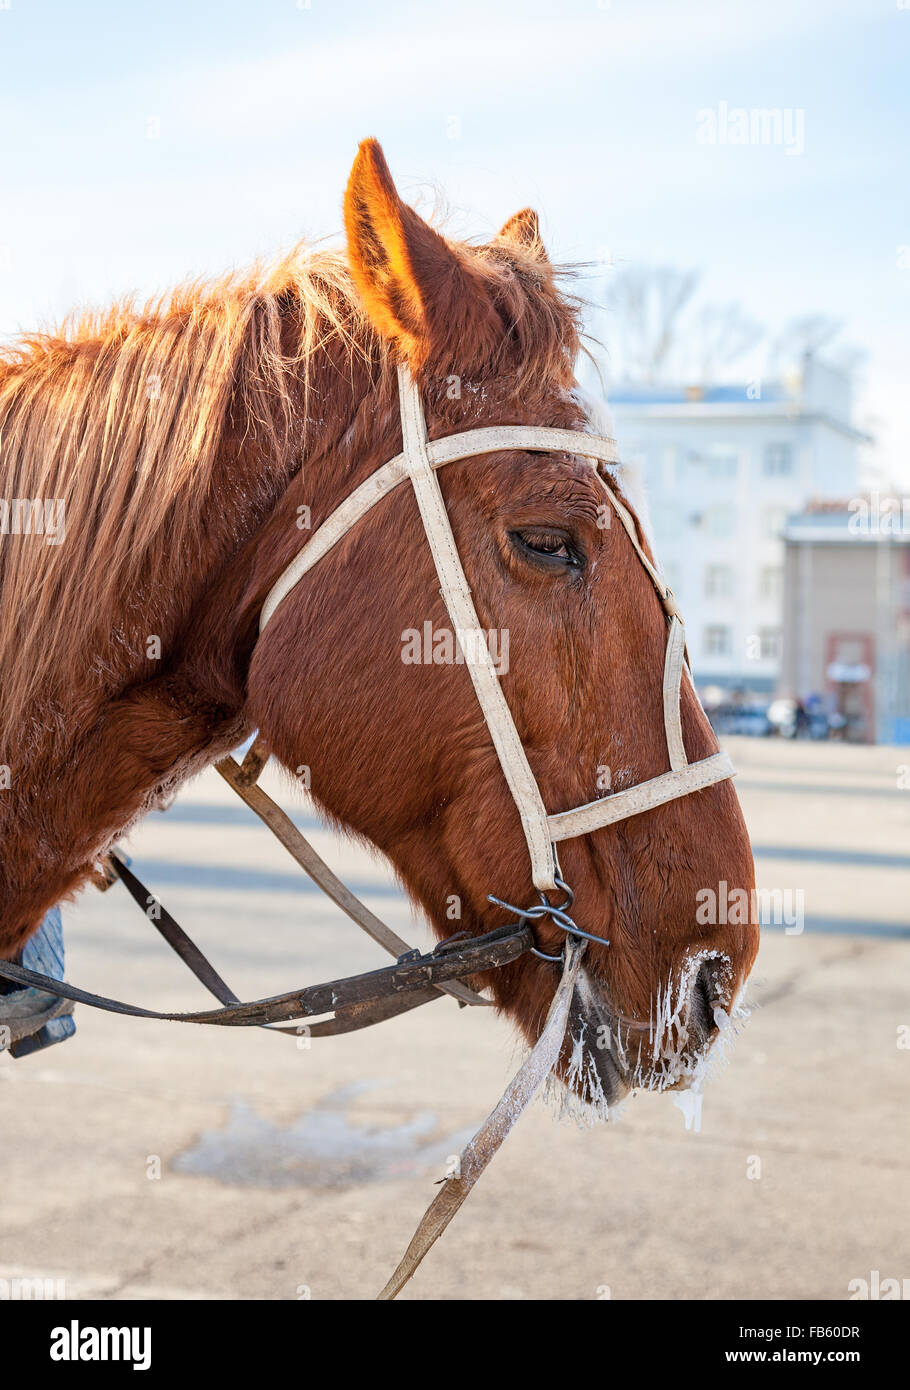 Head of brown horse with bridle and harness closeup - Stock Image